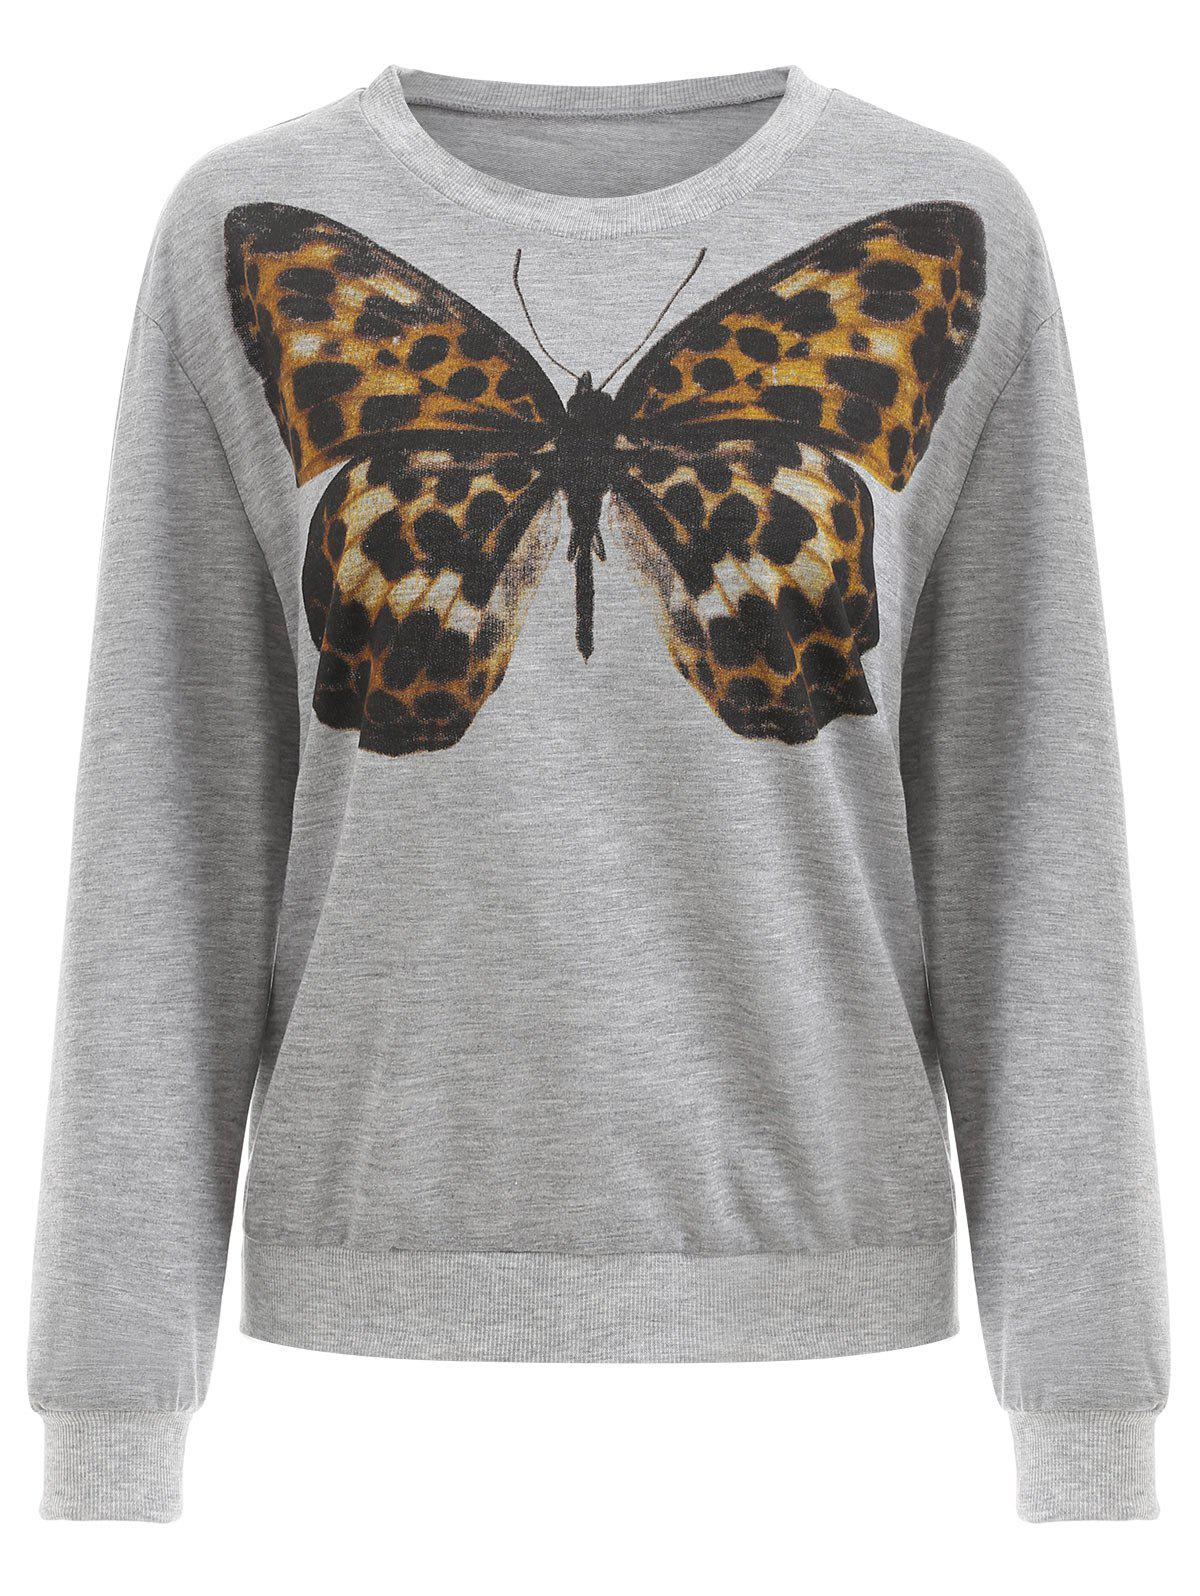 Sweat-shirt Papillon Imprimé Nuage Gris S